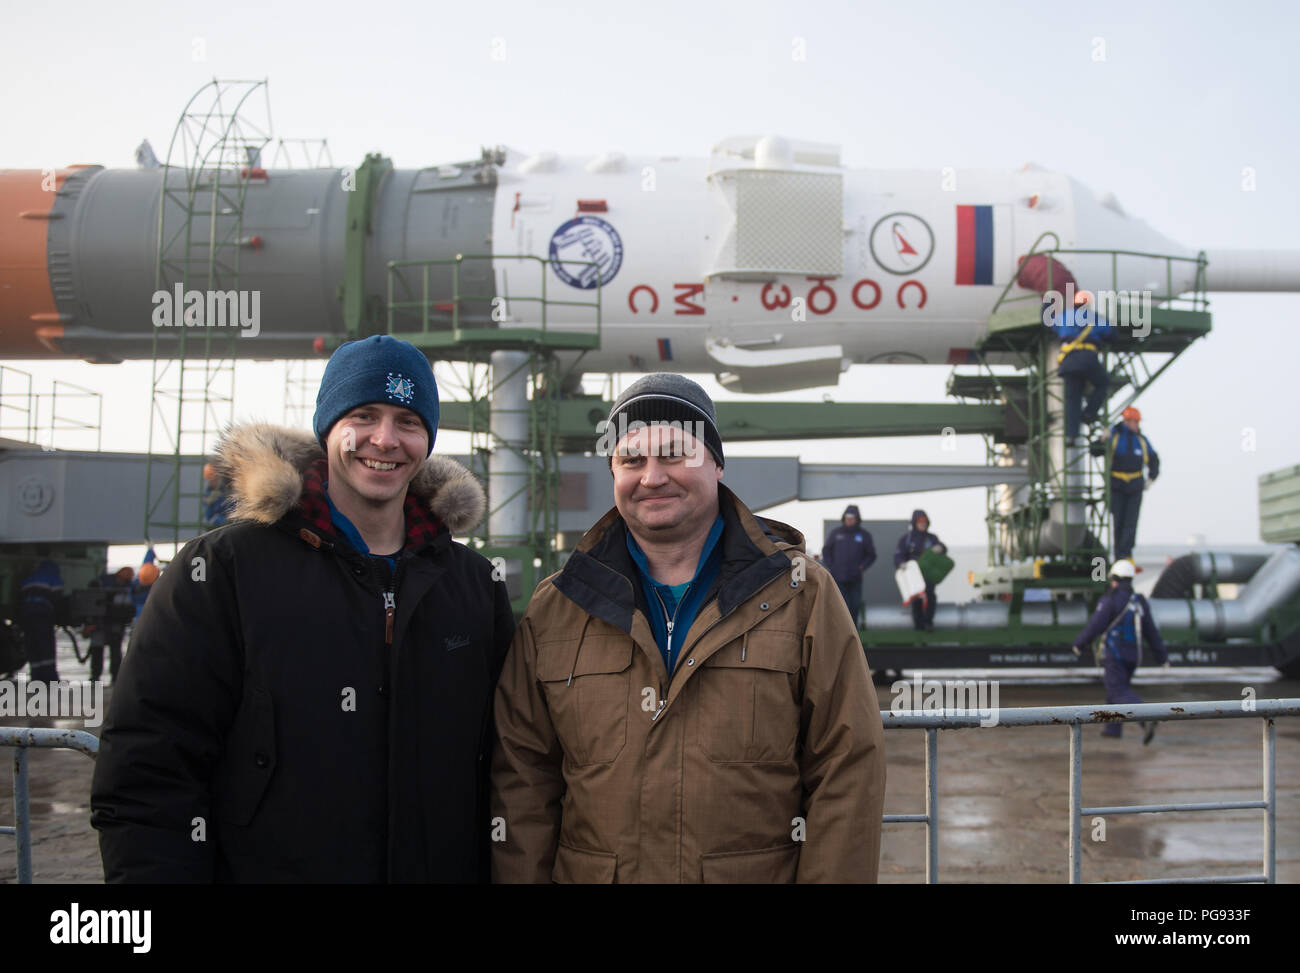 Expedition 55 backup crewmembers Nick Hague of NASA, left, and Alexey Ovchinin of Roscosmos pose for a picture as the Soyuz rocket is rolled out to the pad, Monday, March 19, 2018 at the Baikonur Cosmodrome in Kazakhstan. Expedition 55 crewmembers Ricky Arnold and Drew Feustel of NASA and Oleg Artemyev of Roscosmos are scheduled to launch at 1:44 p.m. Eastern time (11:44 p.m. Baikonur time) on March 21 and will spend the next five months living and working aboard the International Space Station. - Stock Image